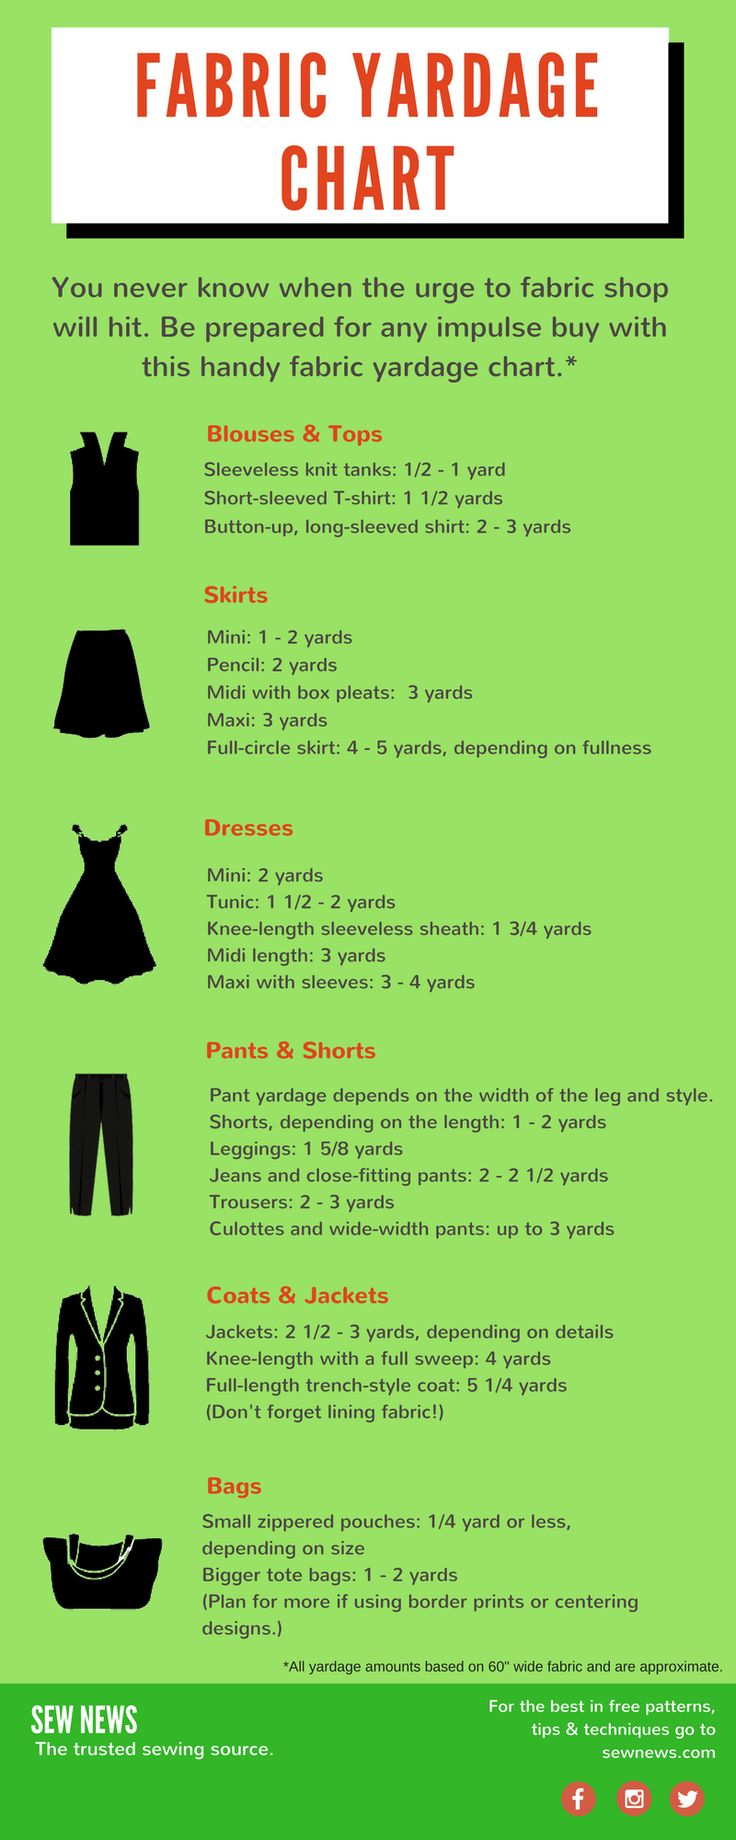 Handy Fabric Yardage Chart!